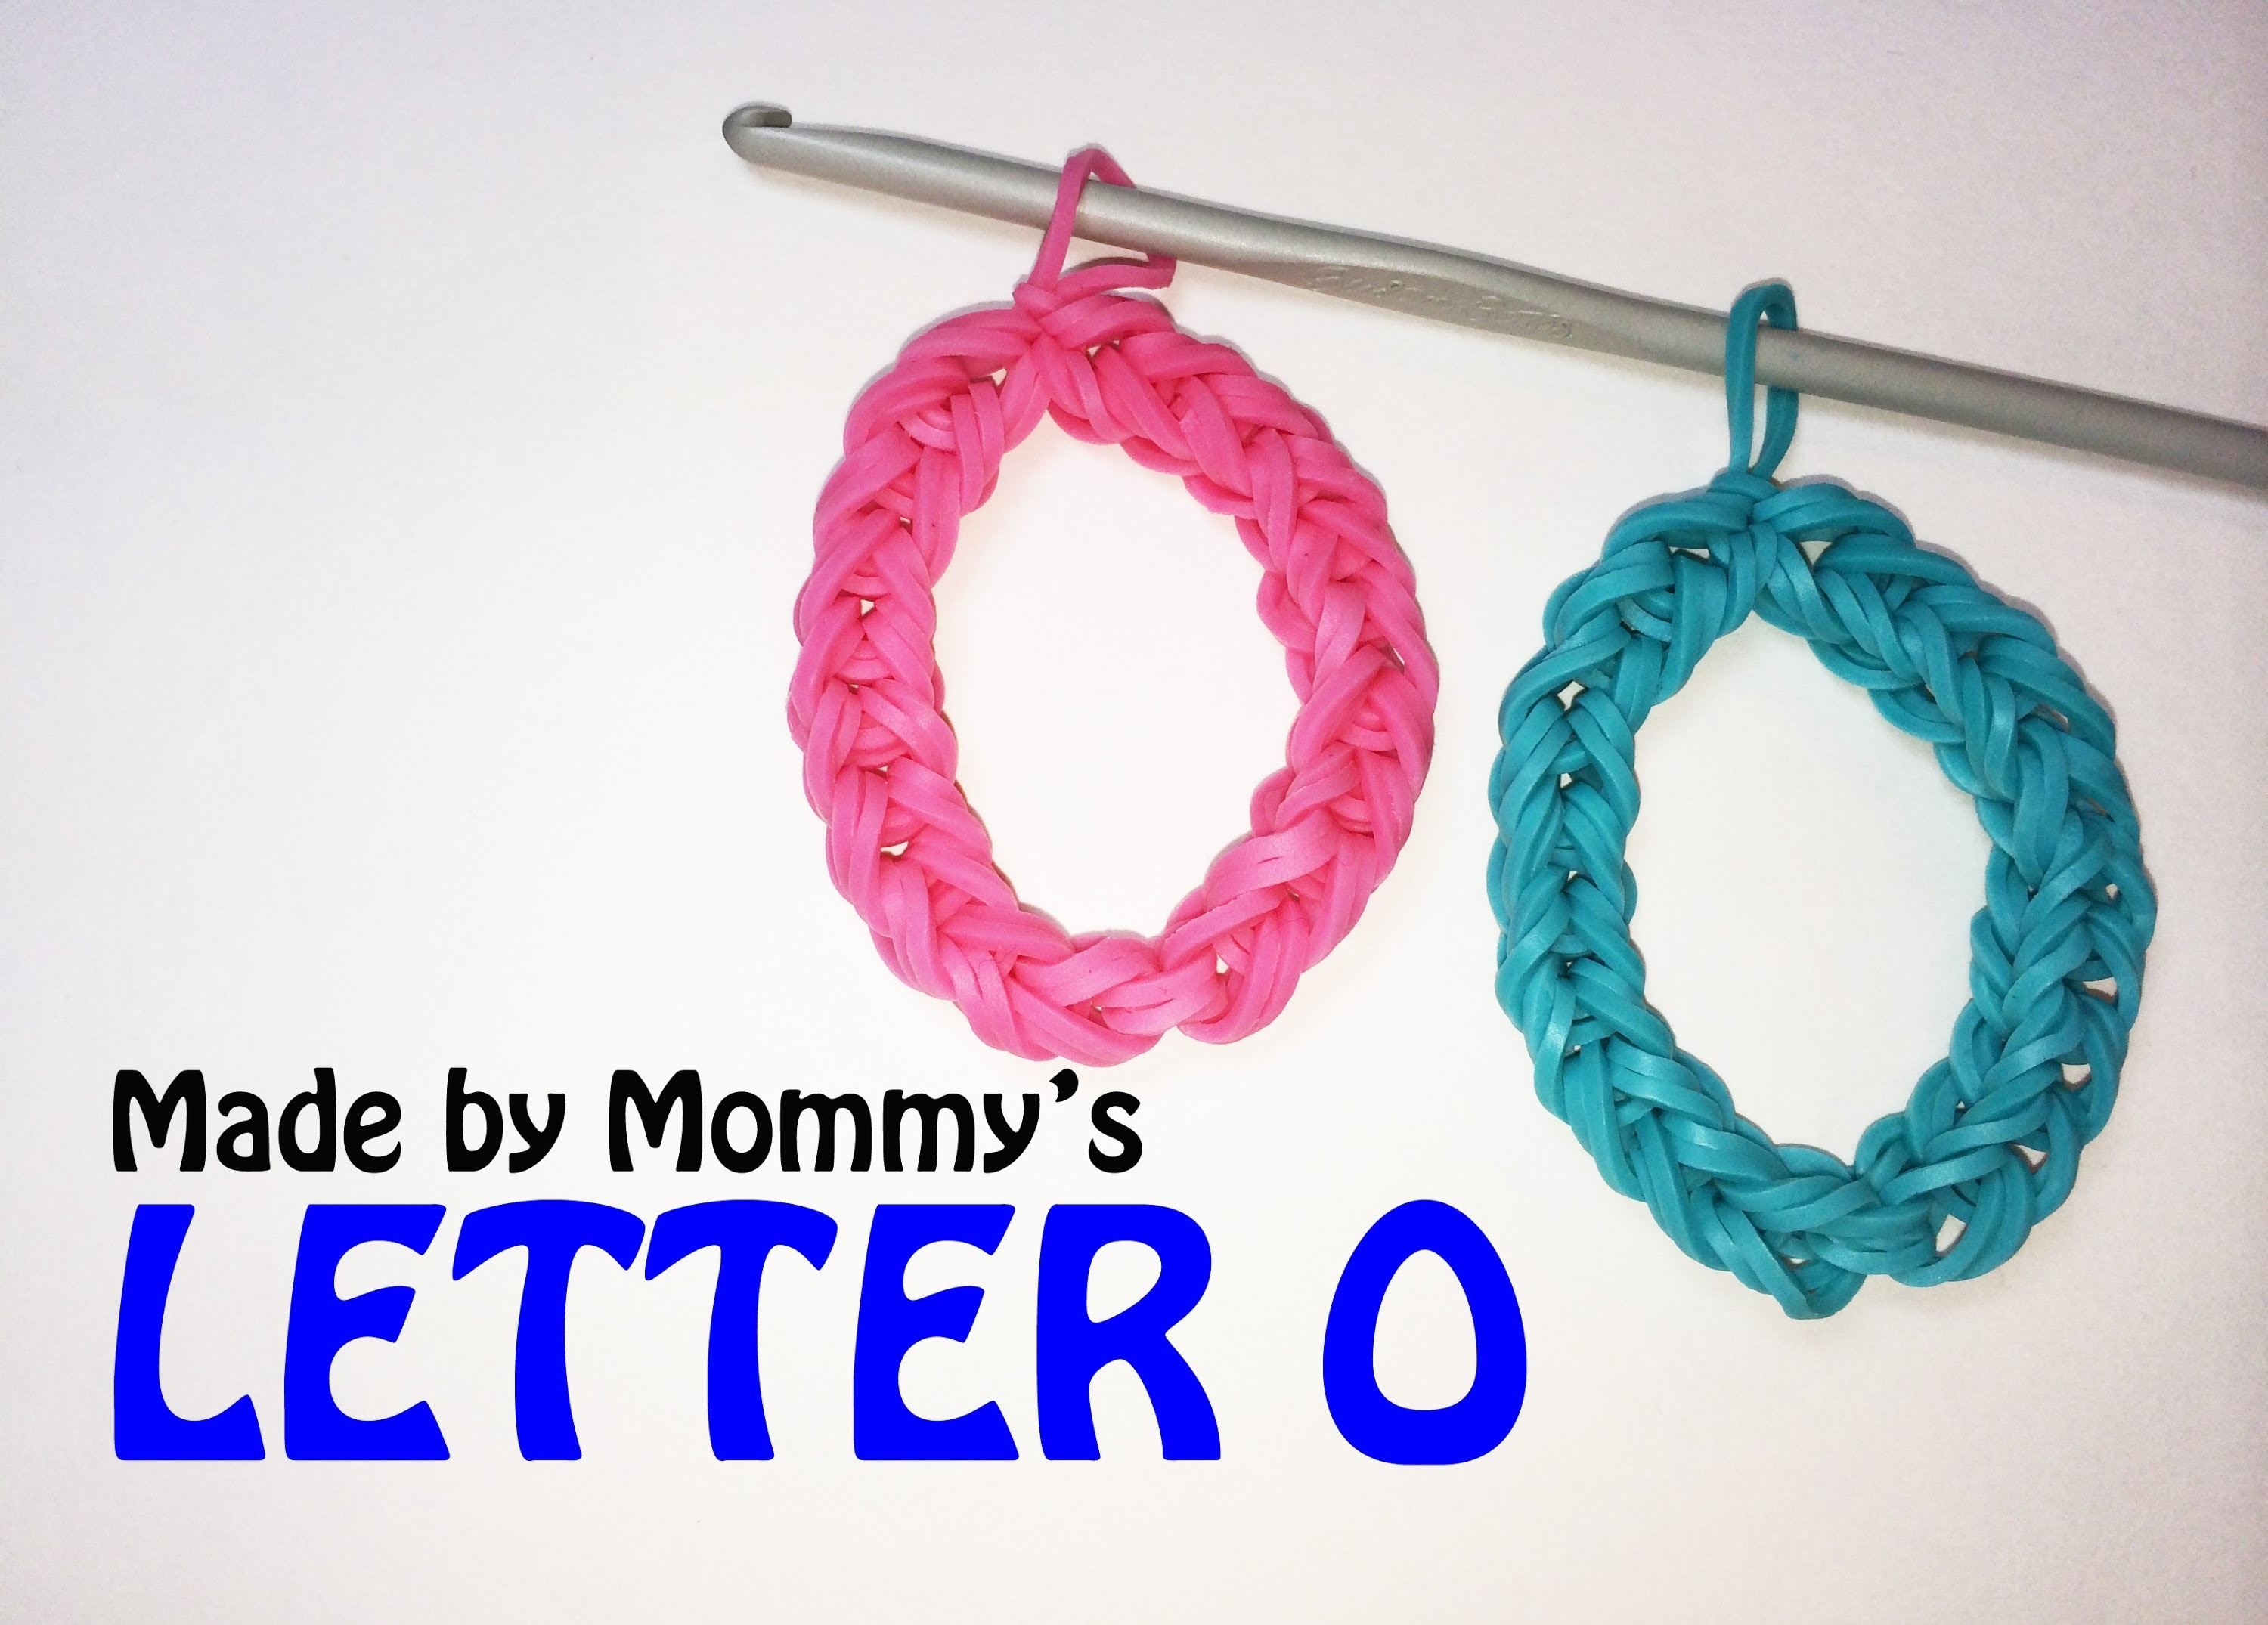 Letter O or Number Zero 0 Charm Without the Rainbow Loom